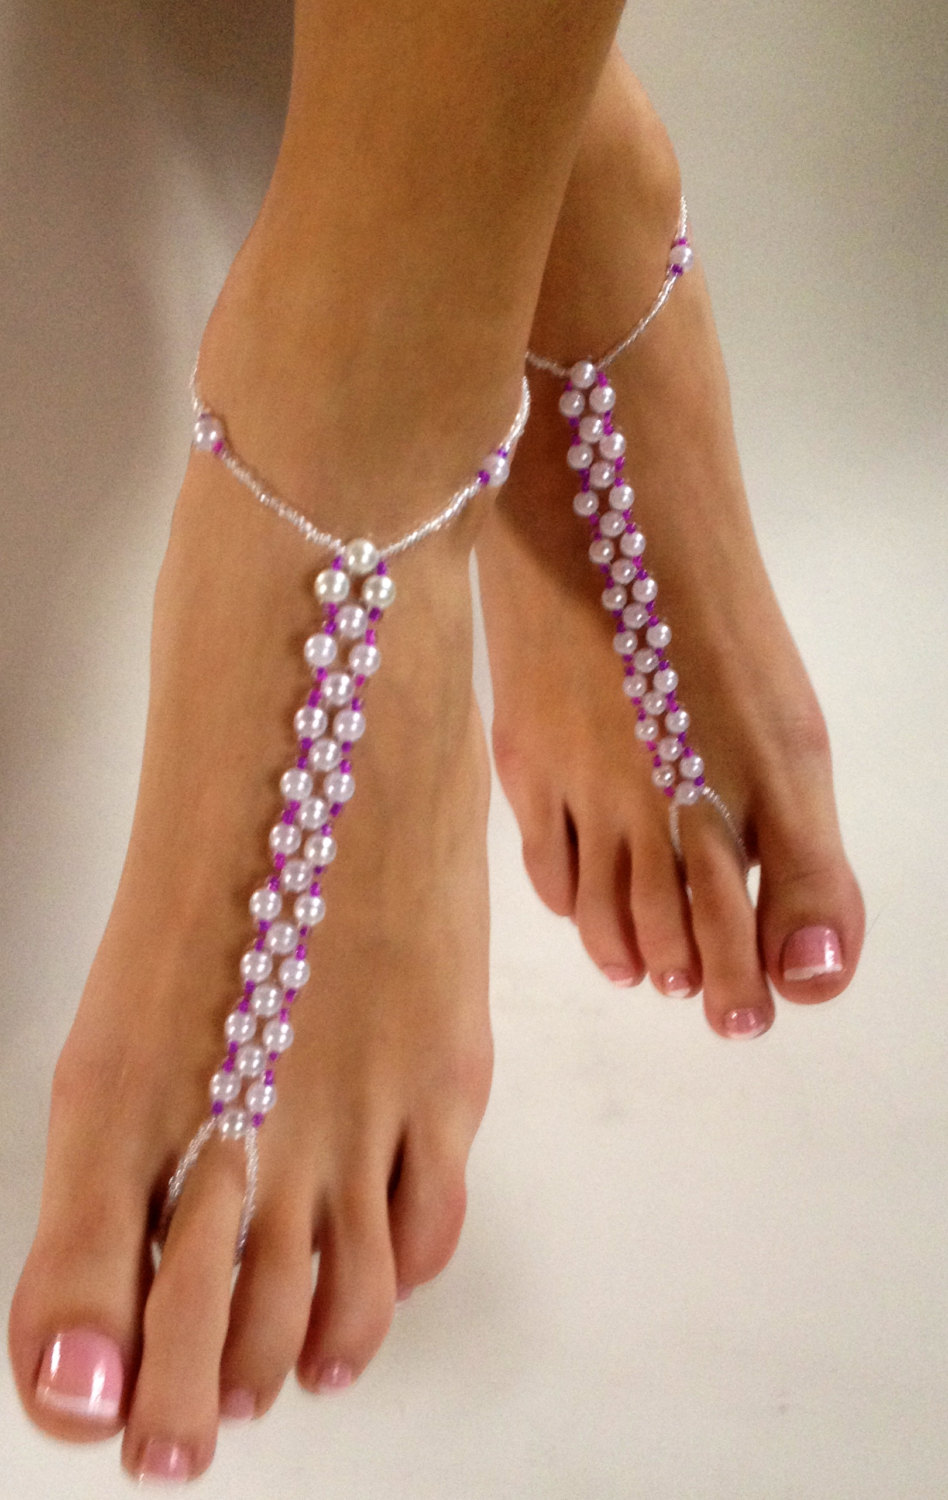 e96614d47c205 Pearl and Fusia Hot Pink Barefoot Sandals Foot Jewelry Foot Thong ...